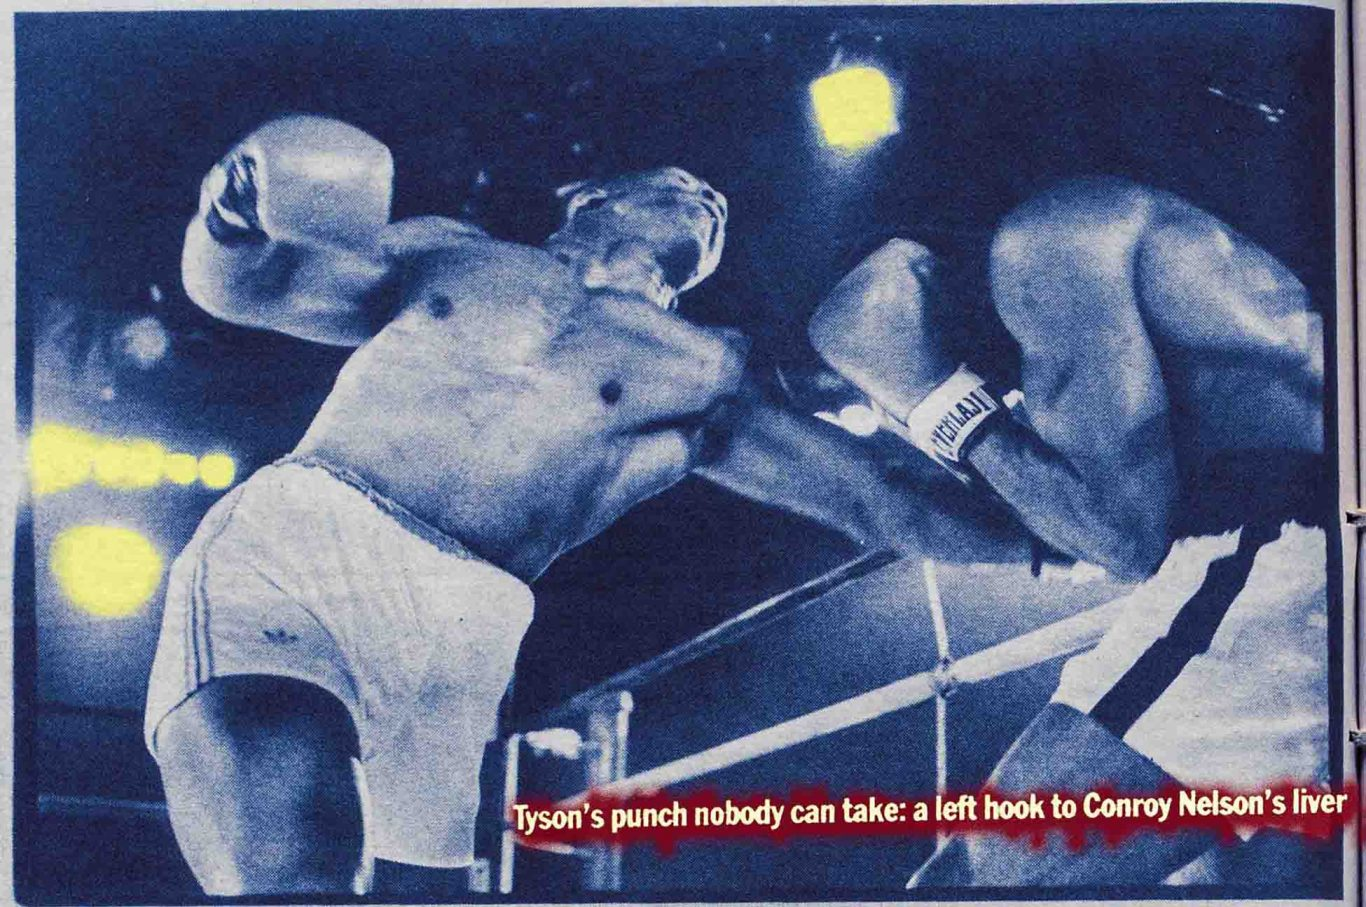 Jack Newfield's Village Voice writes about Mike Tyson as a rising star